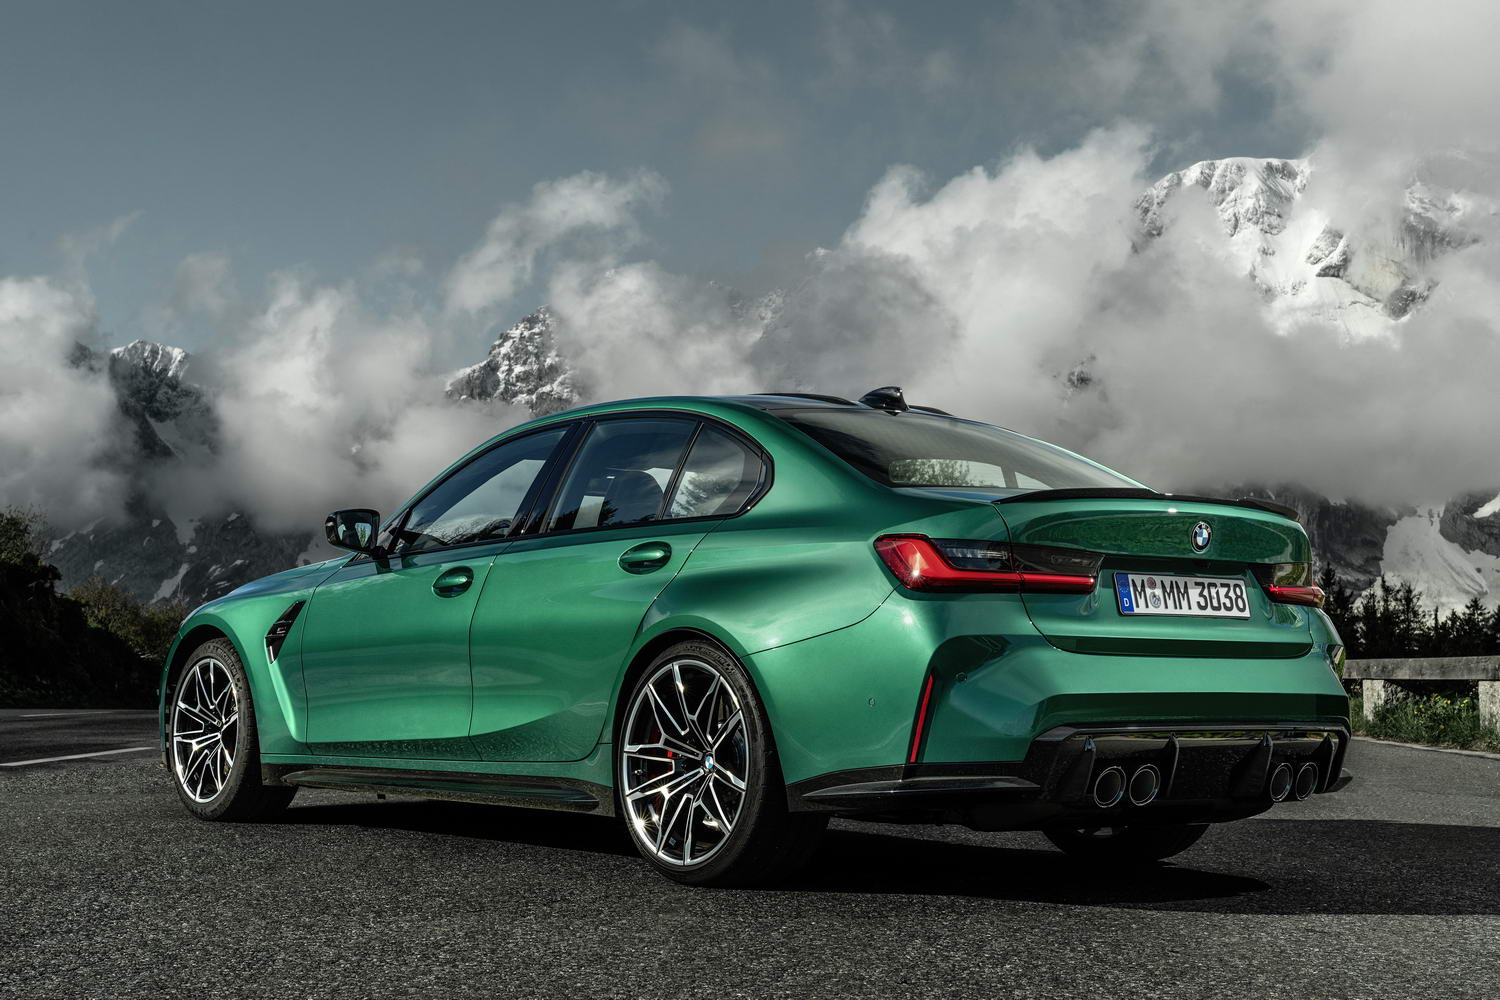 All-new 2021 BMW M3 and M4 get 510hp - car and motoring ...